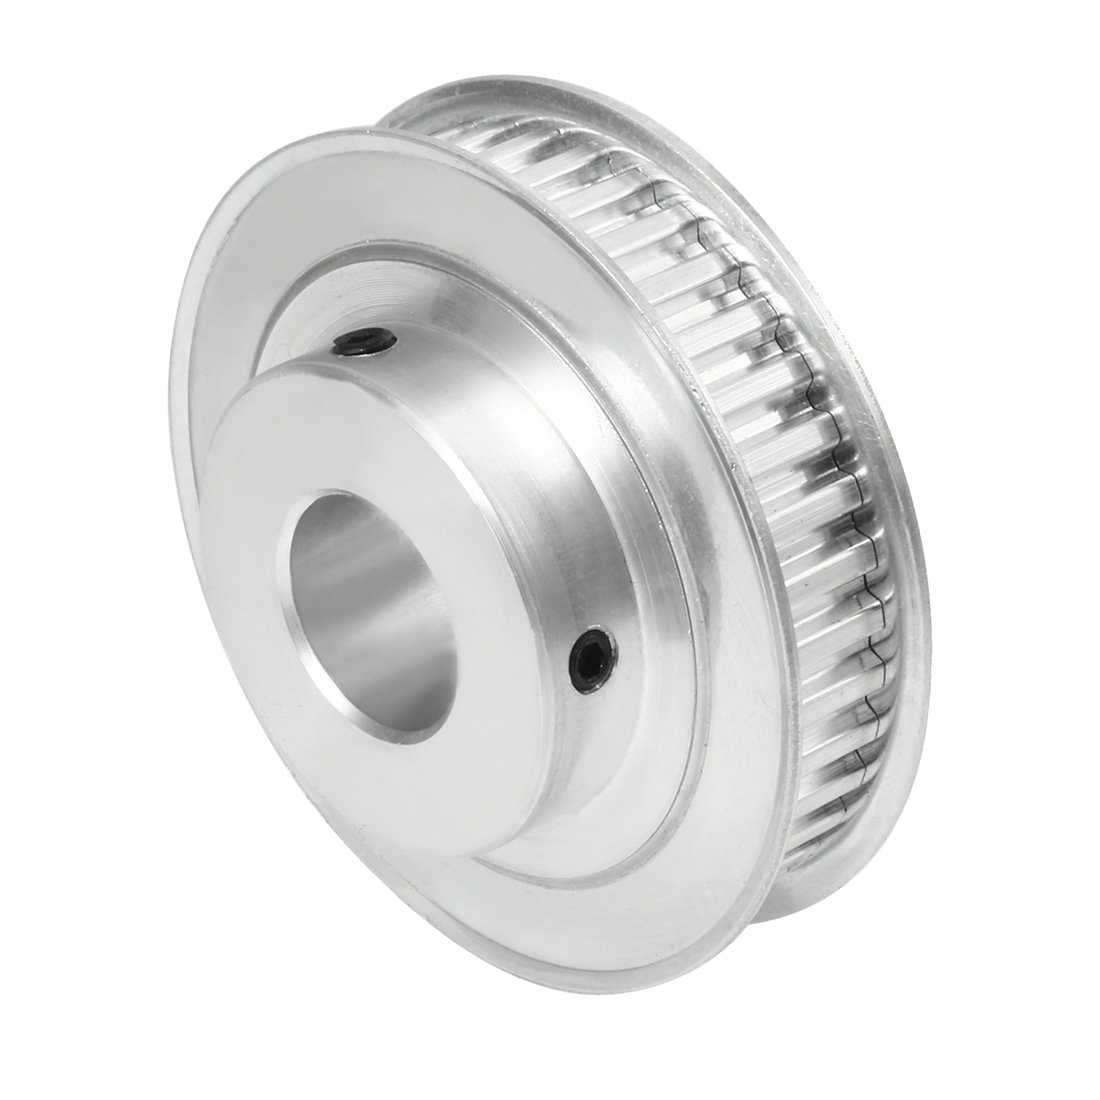 Uxcell Aluminum Xl 60 Teeth 10mm Bore Timing Belt Pulley Flange Pulleys Synchronous Wheel For